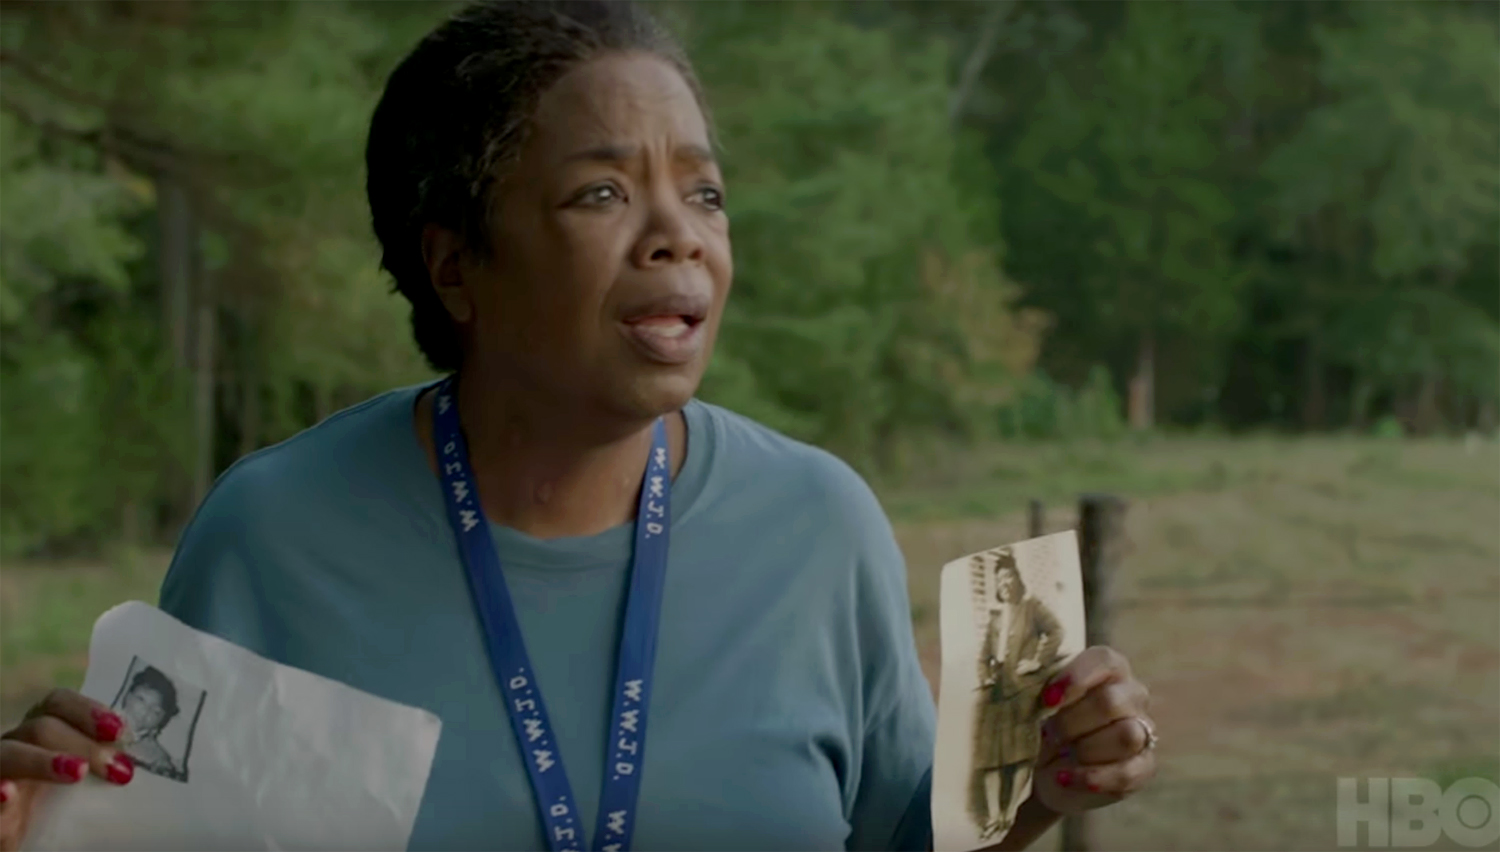 The first teaser trailer for Oprah Winfrey's upcoming television movie The Immortal Life of Henrietta Lacks has been released!